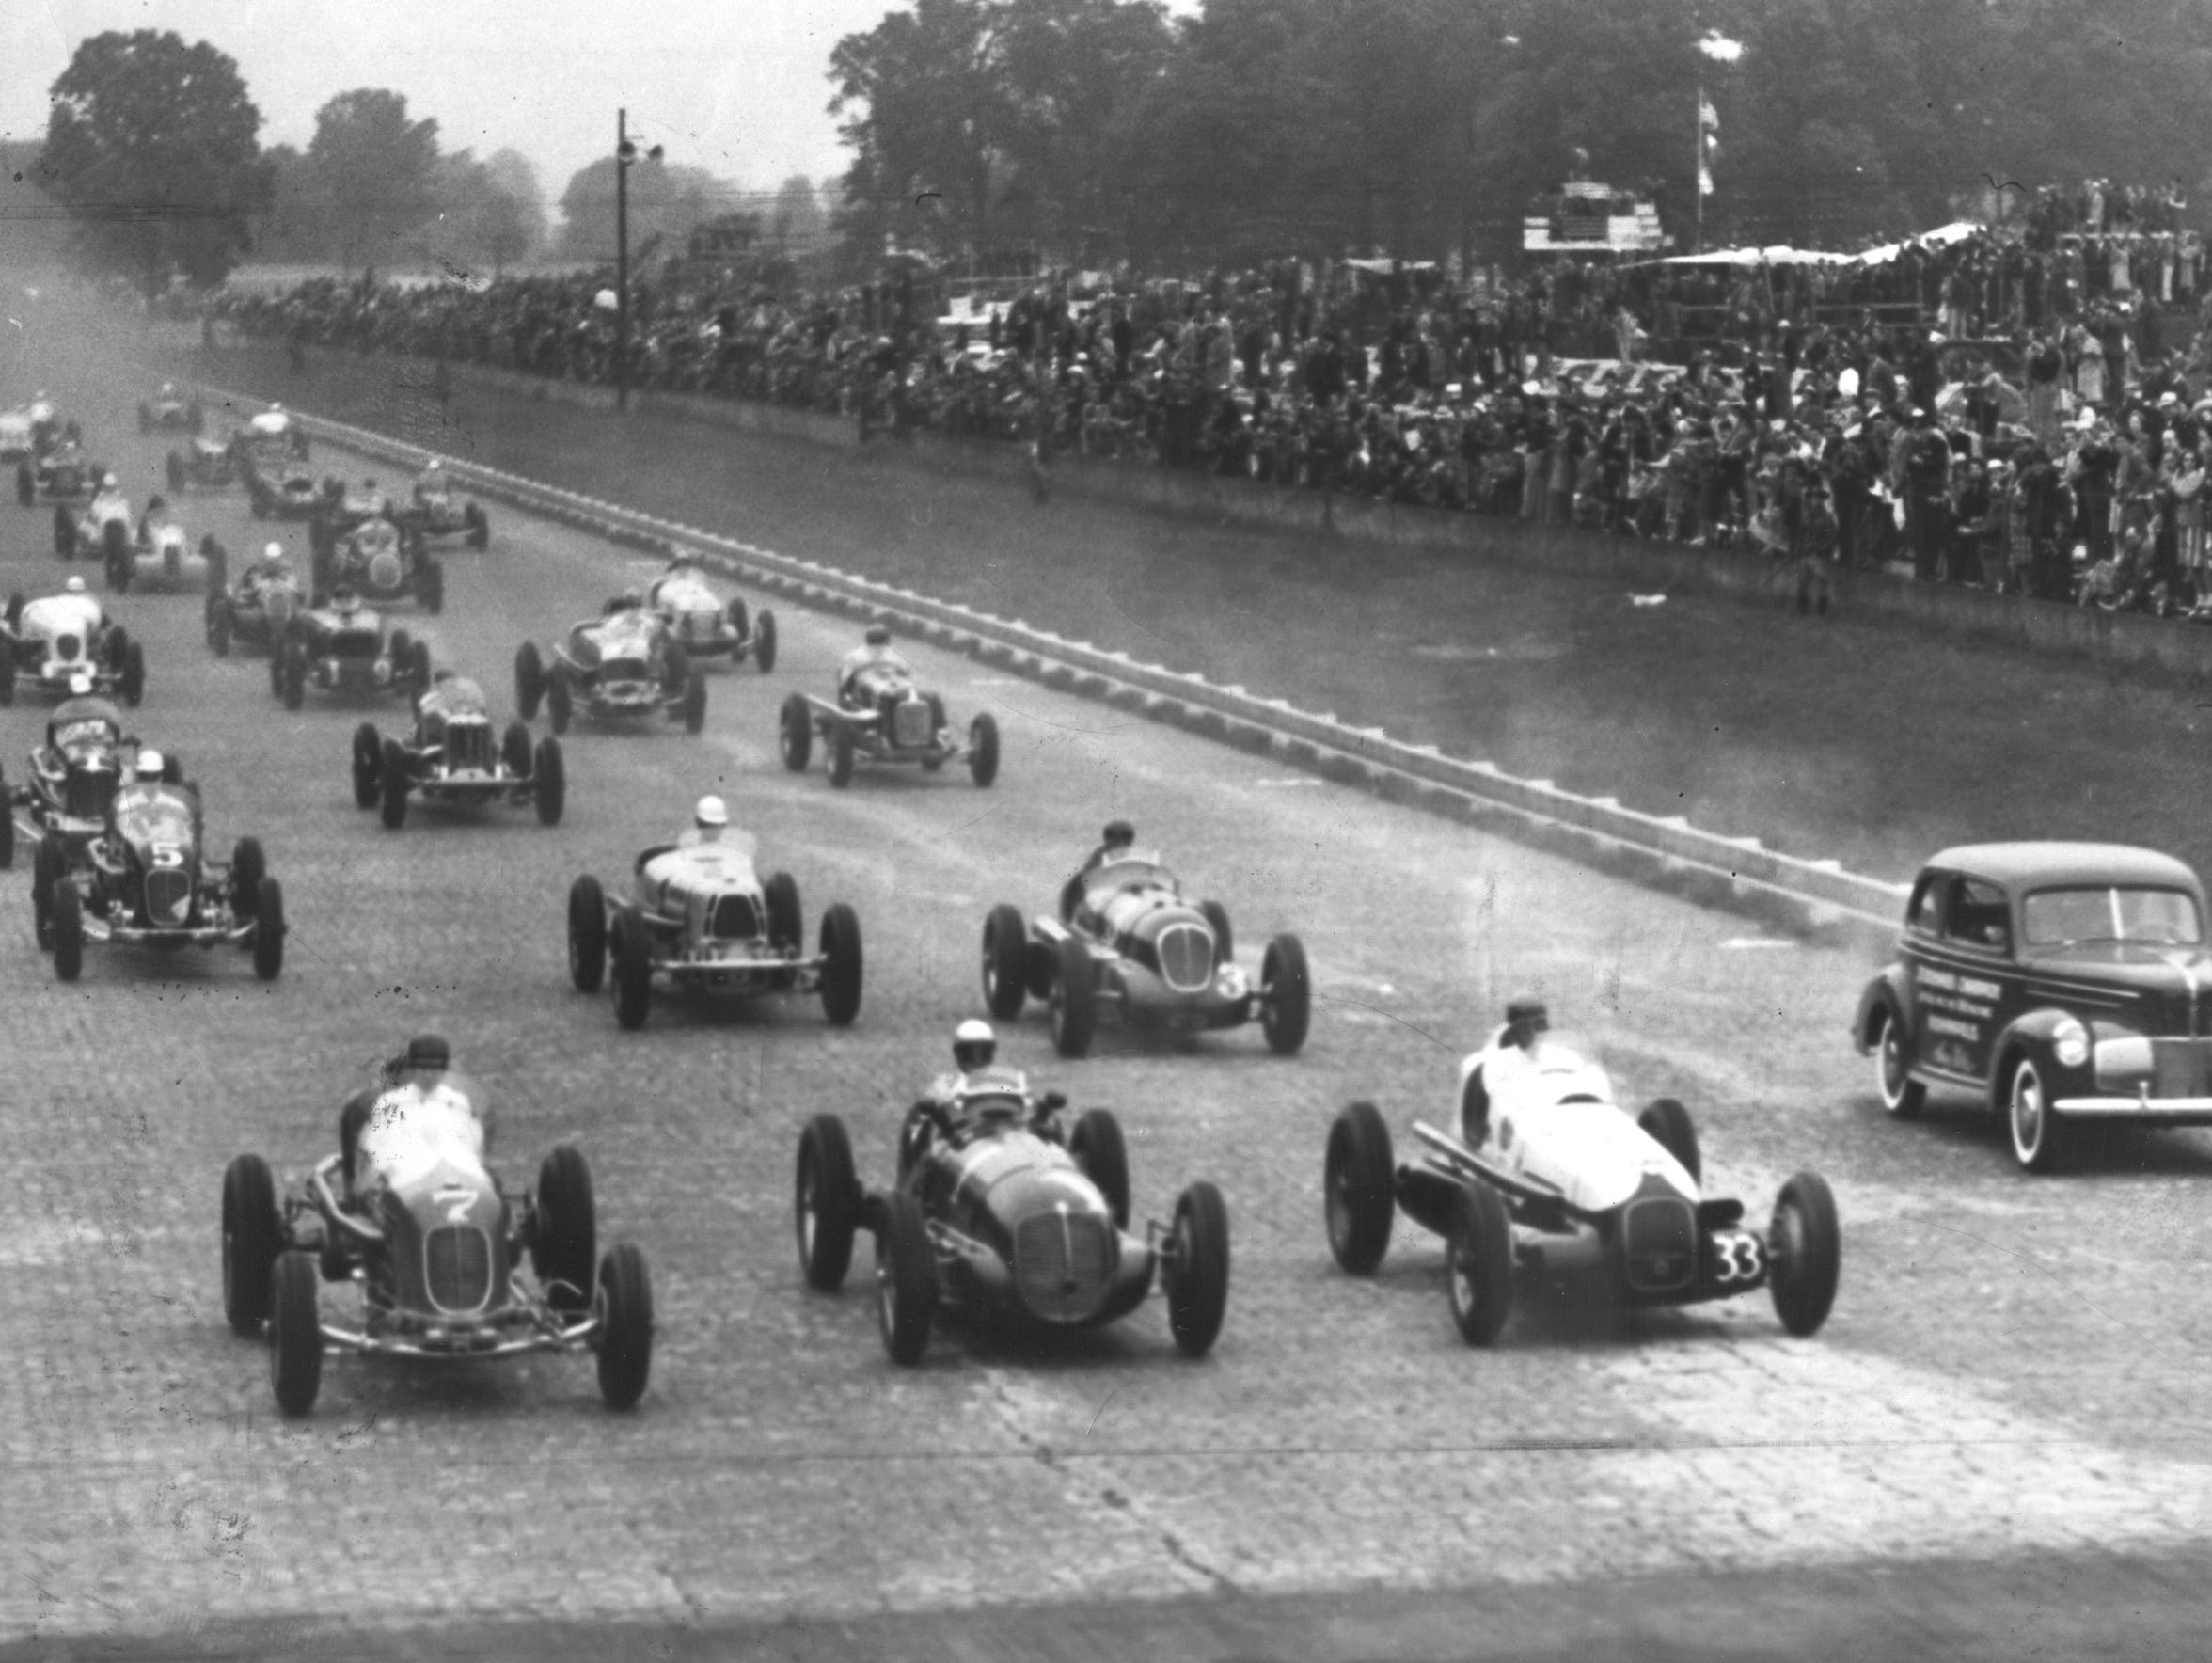 By 1940, drivers were winning the race at an average